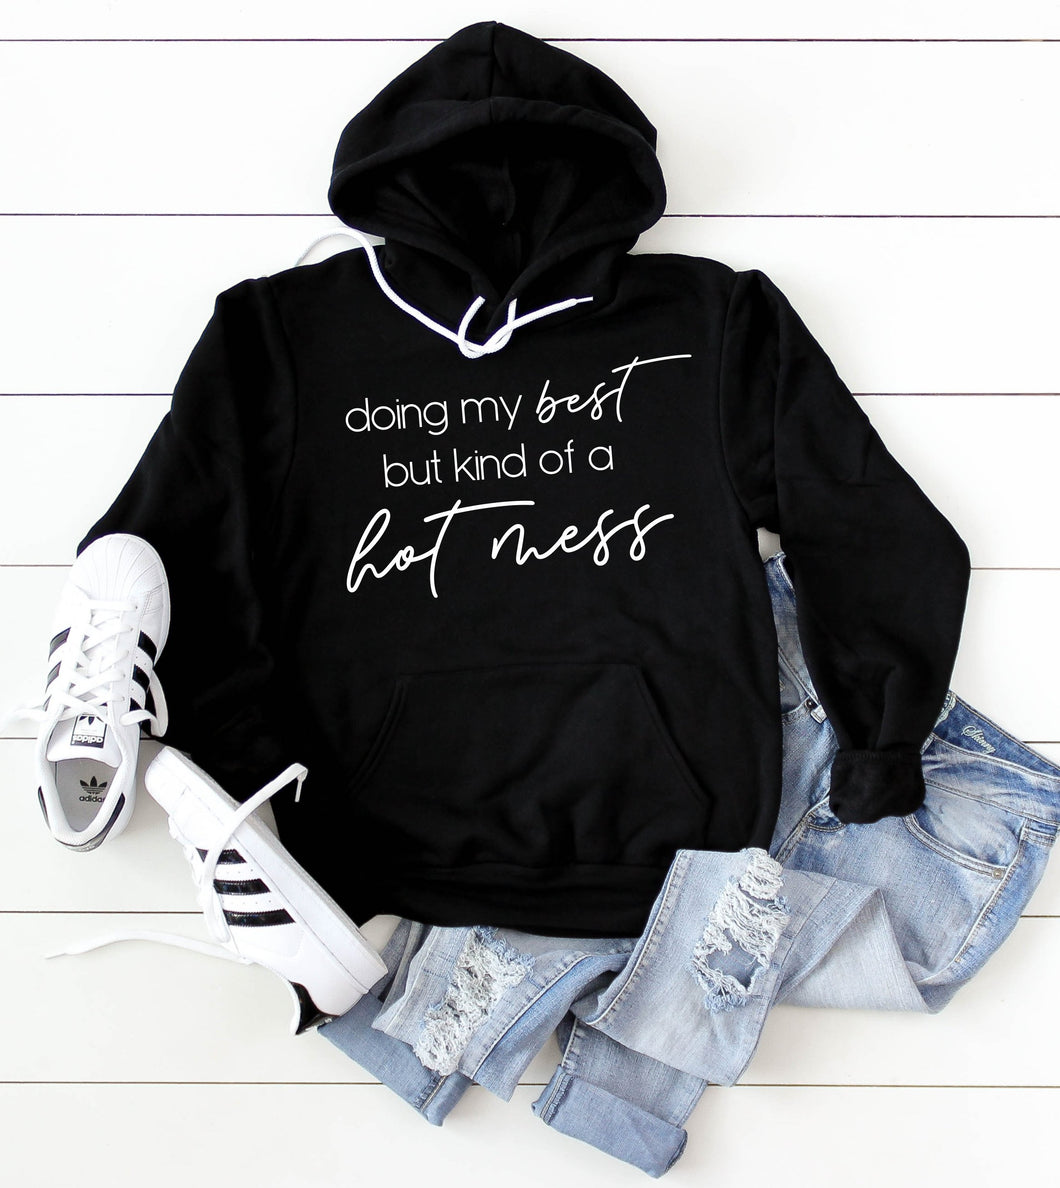 Doing My Best But Kind of a Hot Mess Hooded Sweatshirt